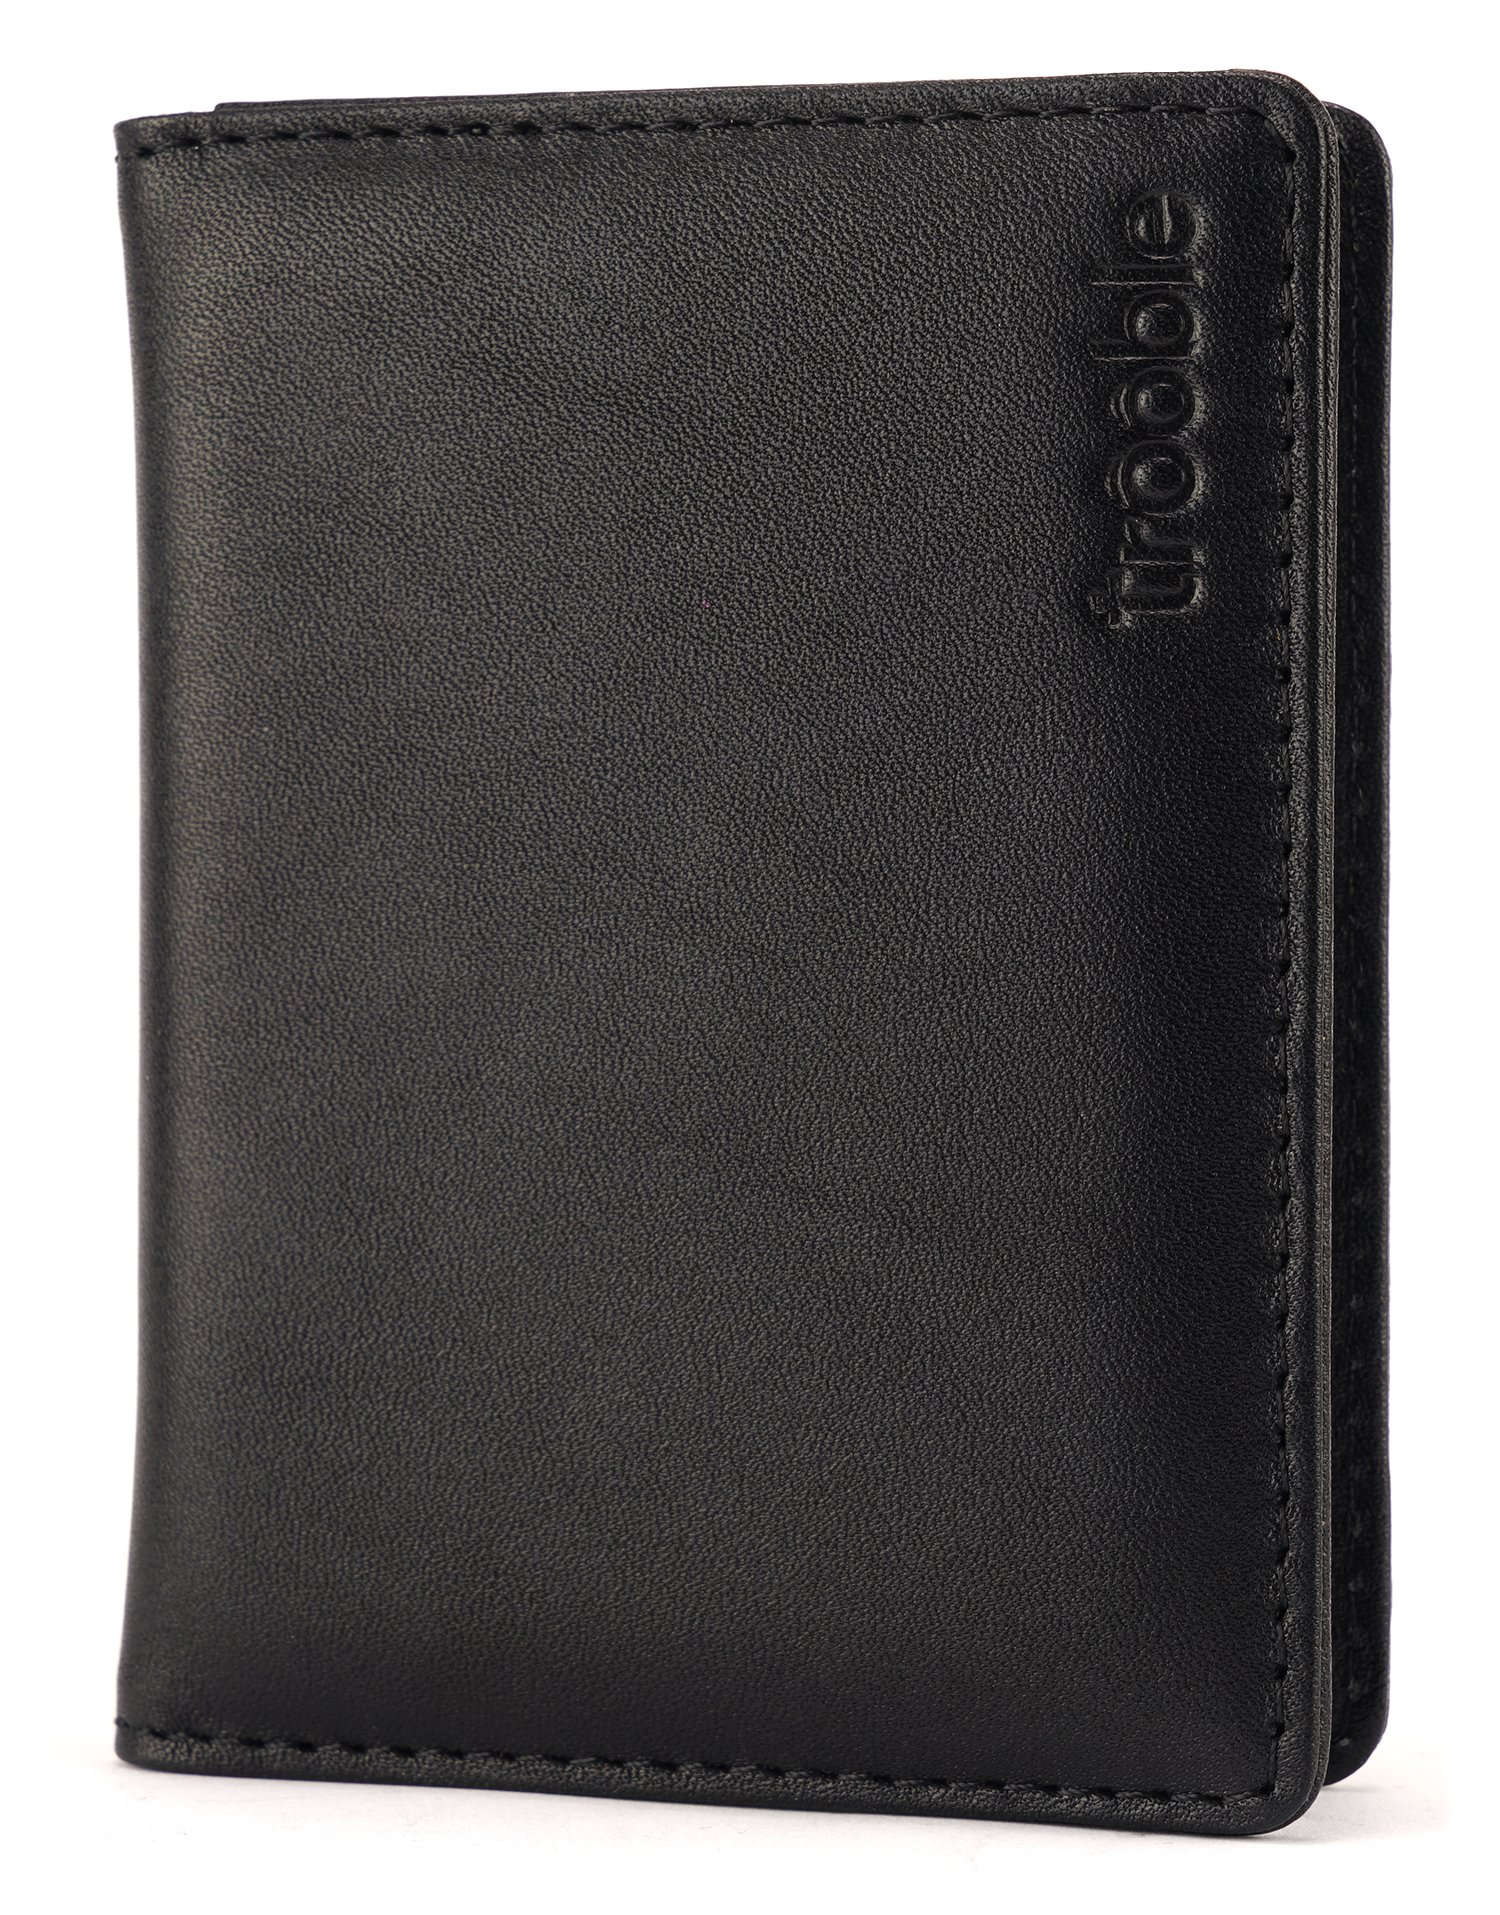 trooble slim wallet - genuine, high quality leather - card case - black